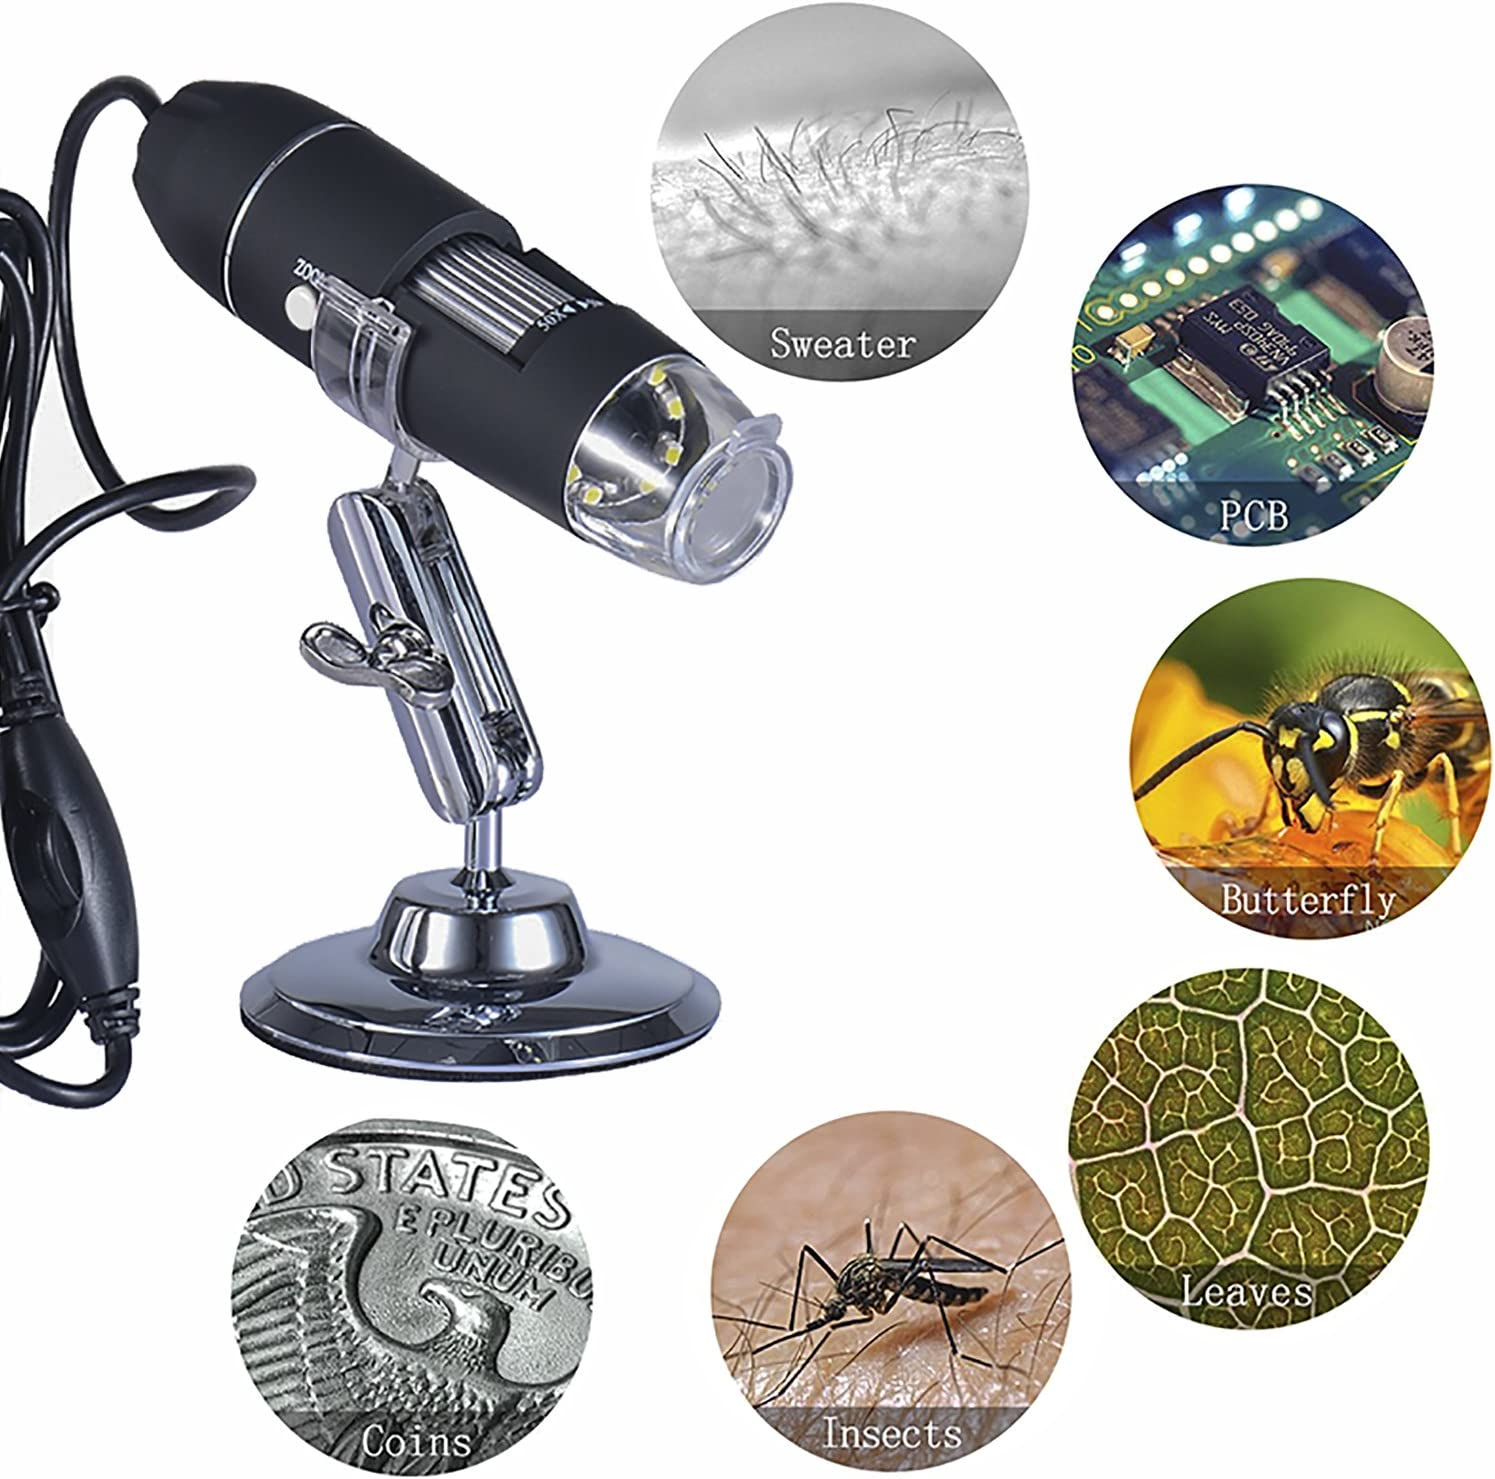 USB Digital Microscope-1000X Magnification Endoscope for Windows-Android-Vista-Linux【Including OTG for Android Device】 8-LED Electronic Magnifier,2.0MP HD Zoom Lens Camera